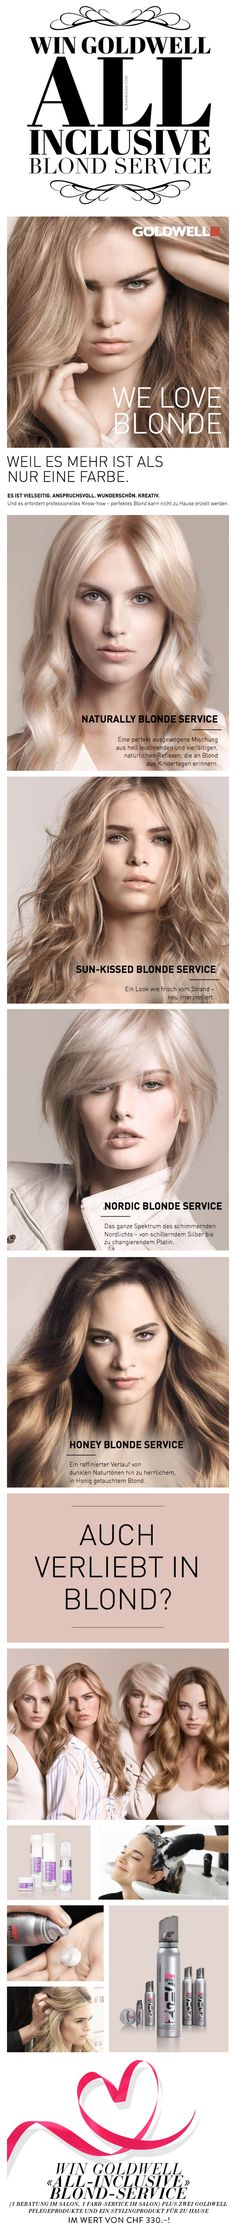 Win Goldwell «All-Inclusive» Blond-Service